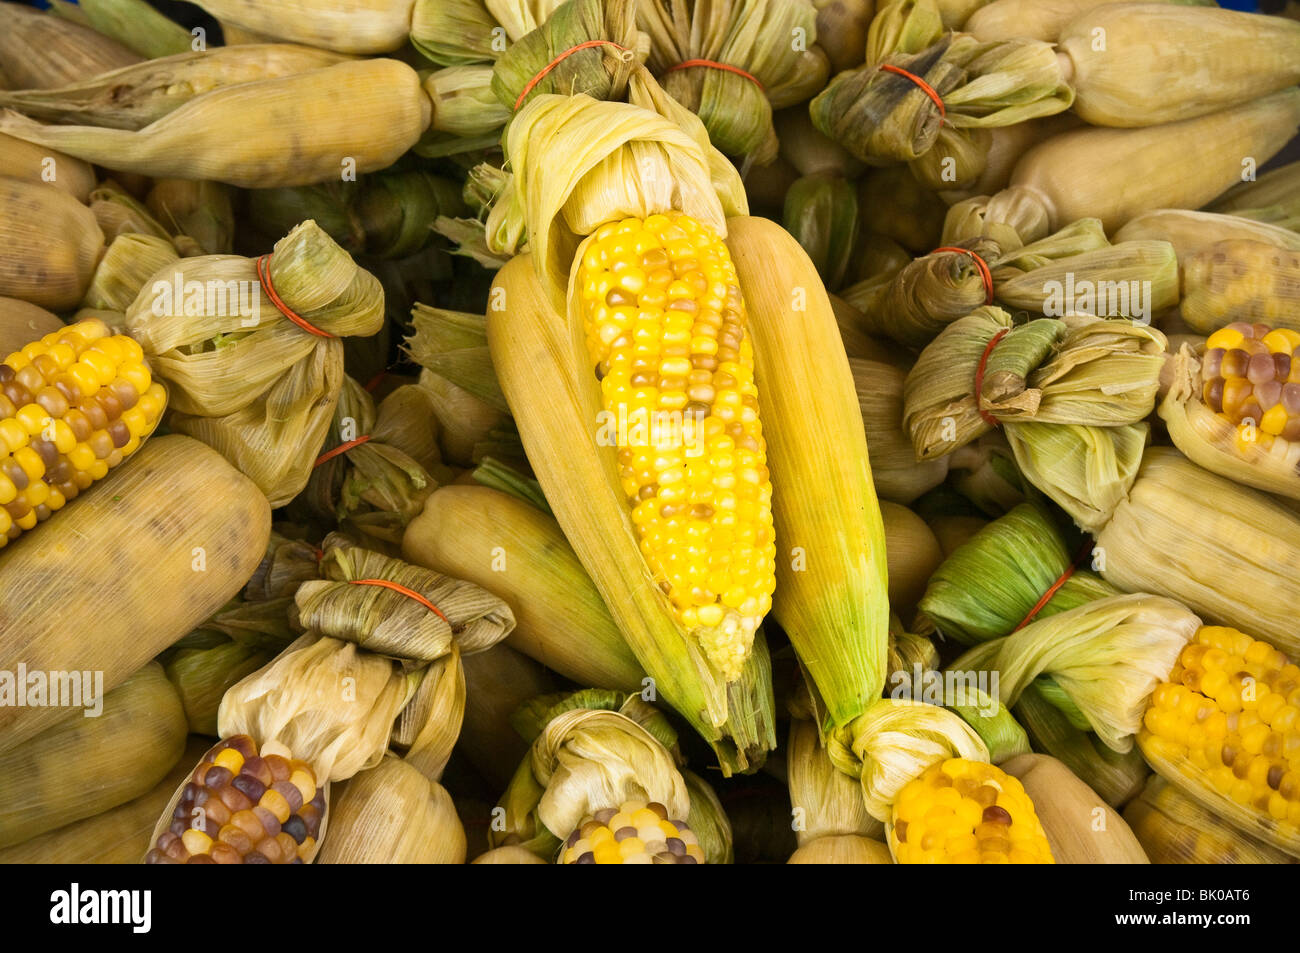 Fresh corn on the cob for sale in Chatuchak Weekend Market food vendor stall; Bangkok, Thailand. - Stock Image